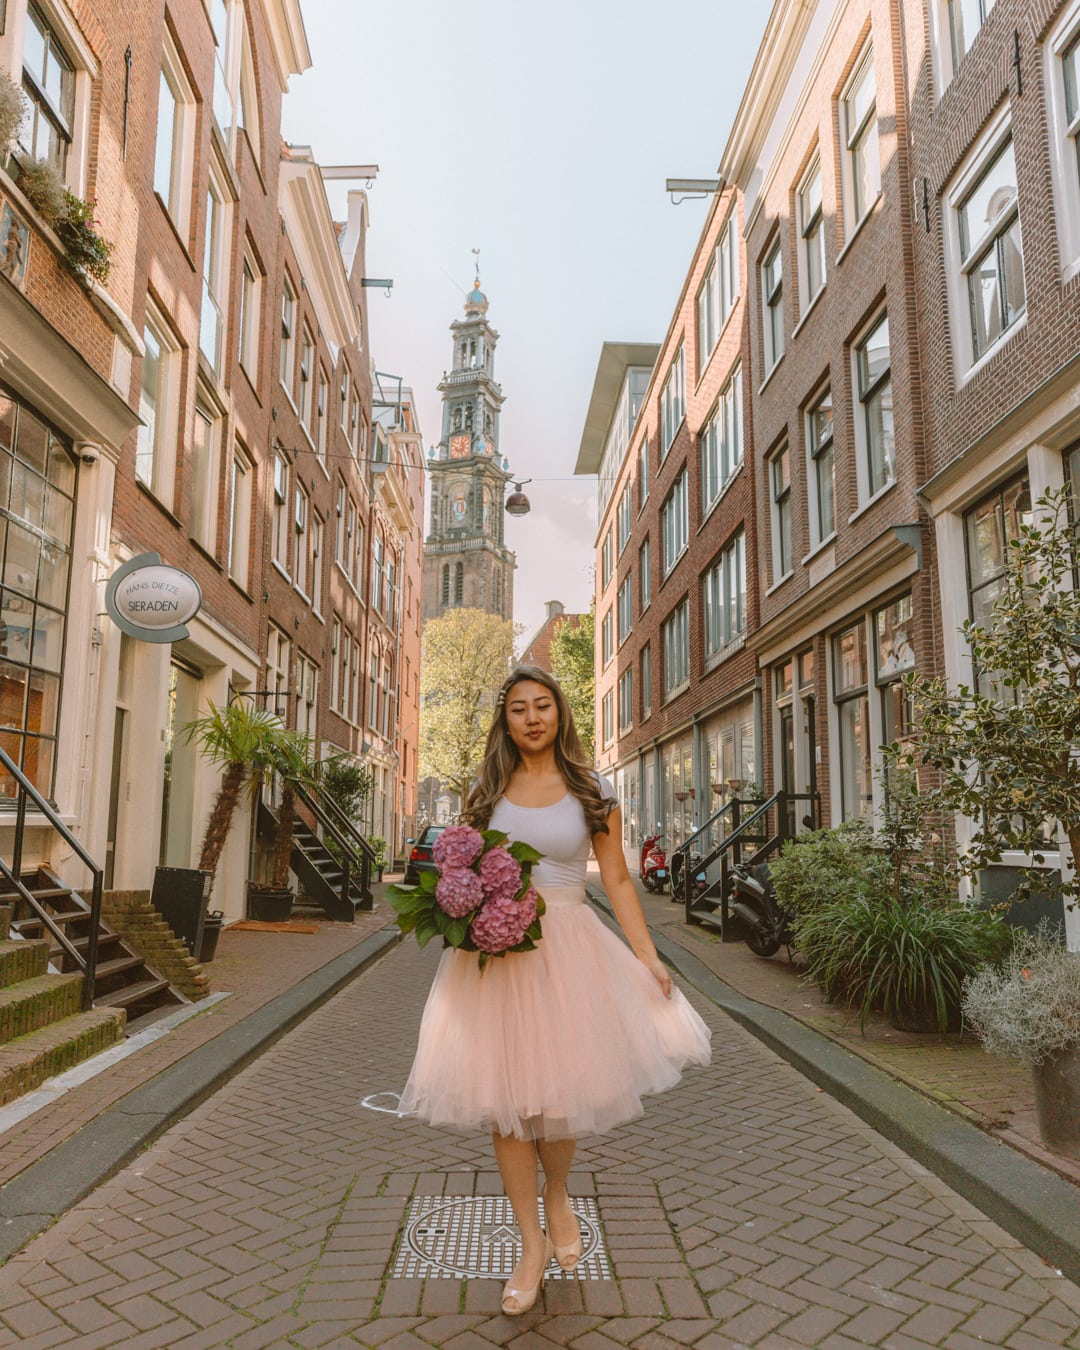 Amsterdam is one of the best Instagrammable places in the world.